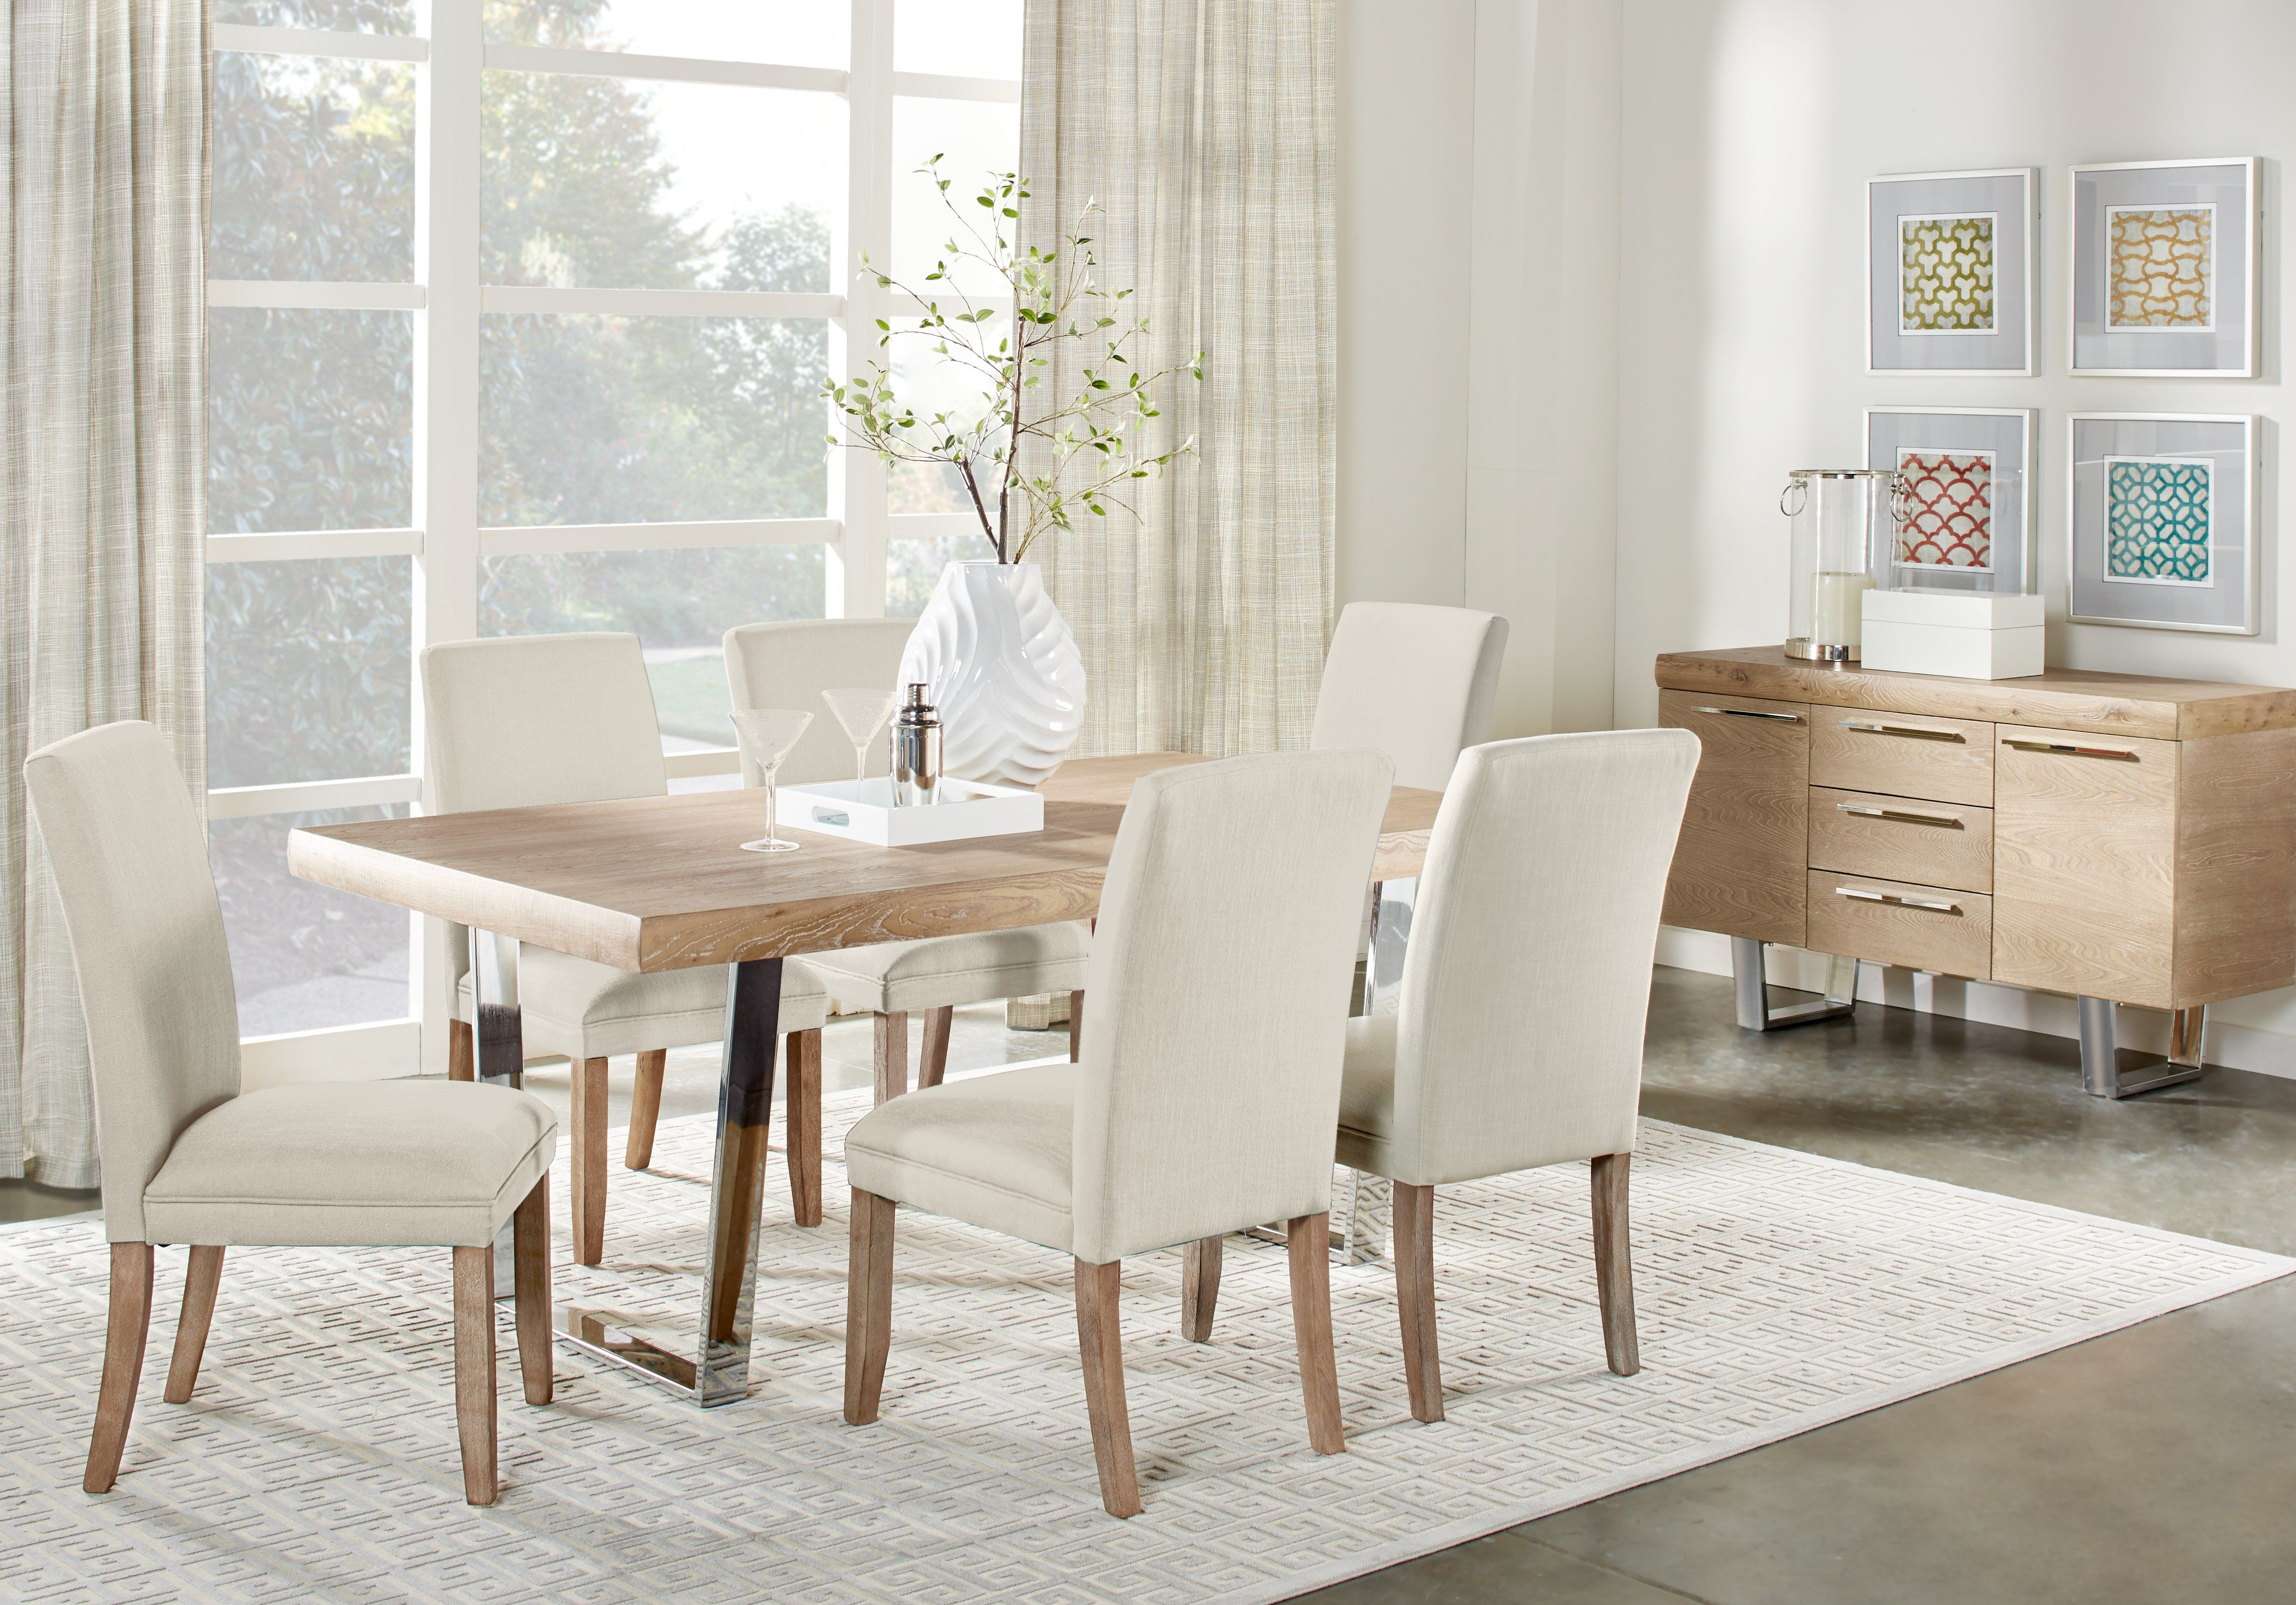 Cindy Crawford Home San Francisco Ash 5 Pc Dining Room Dining Room Sets Rooms To Go Furniture Dining Room Suites